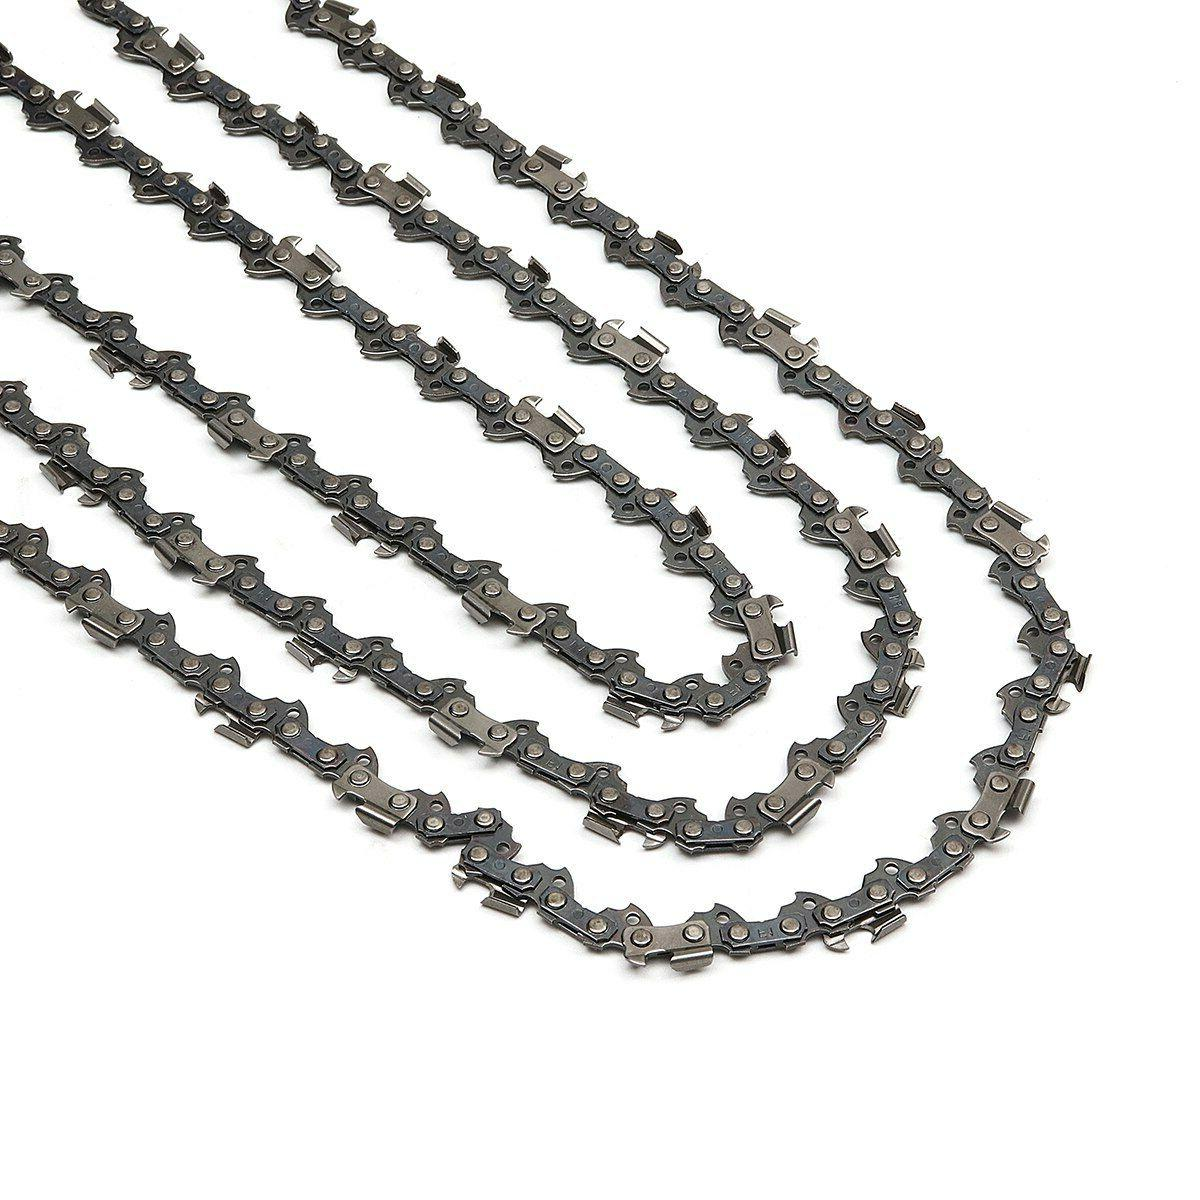 16 Chain Guide Bar Chains for STIHL 009 012 MS180